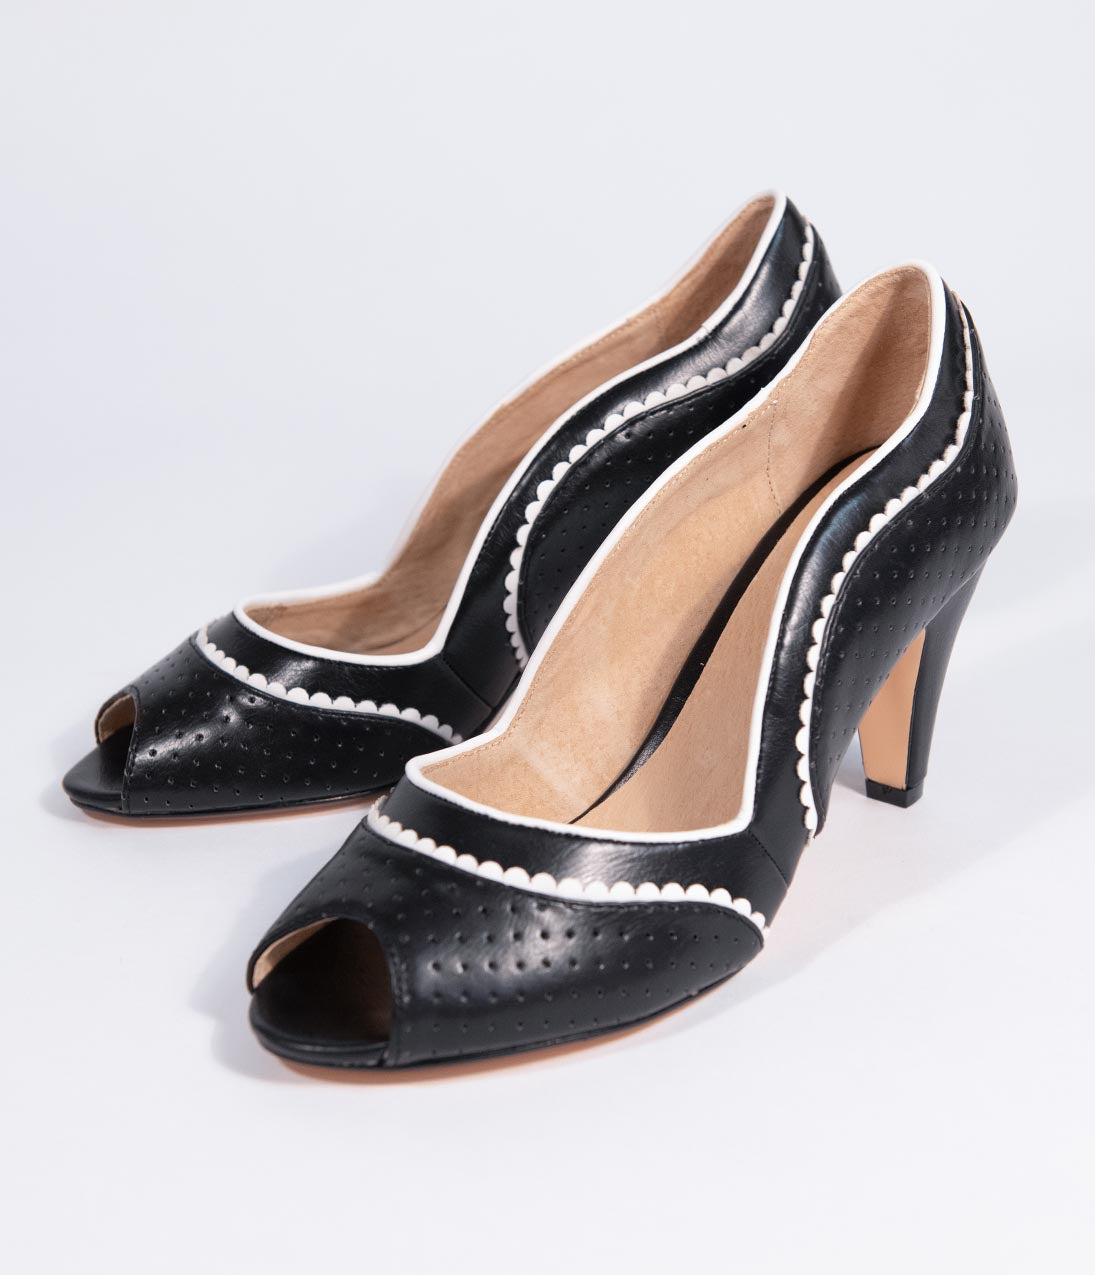 Vintage Style Shoes, Vintage Inspired Shoes Chelsea Crew Black  White Scalloped Leatherette Peep Toe Shana Pumps $68.00 AT vintagedancer.com